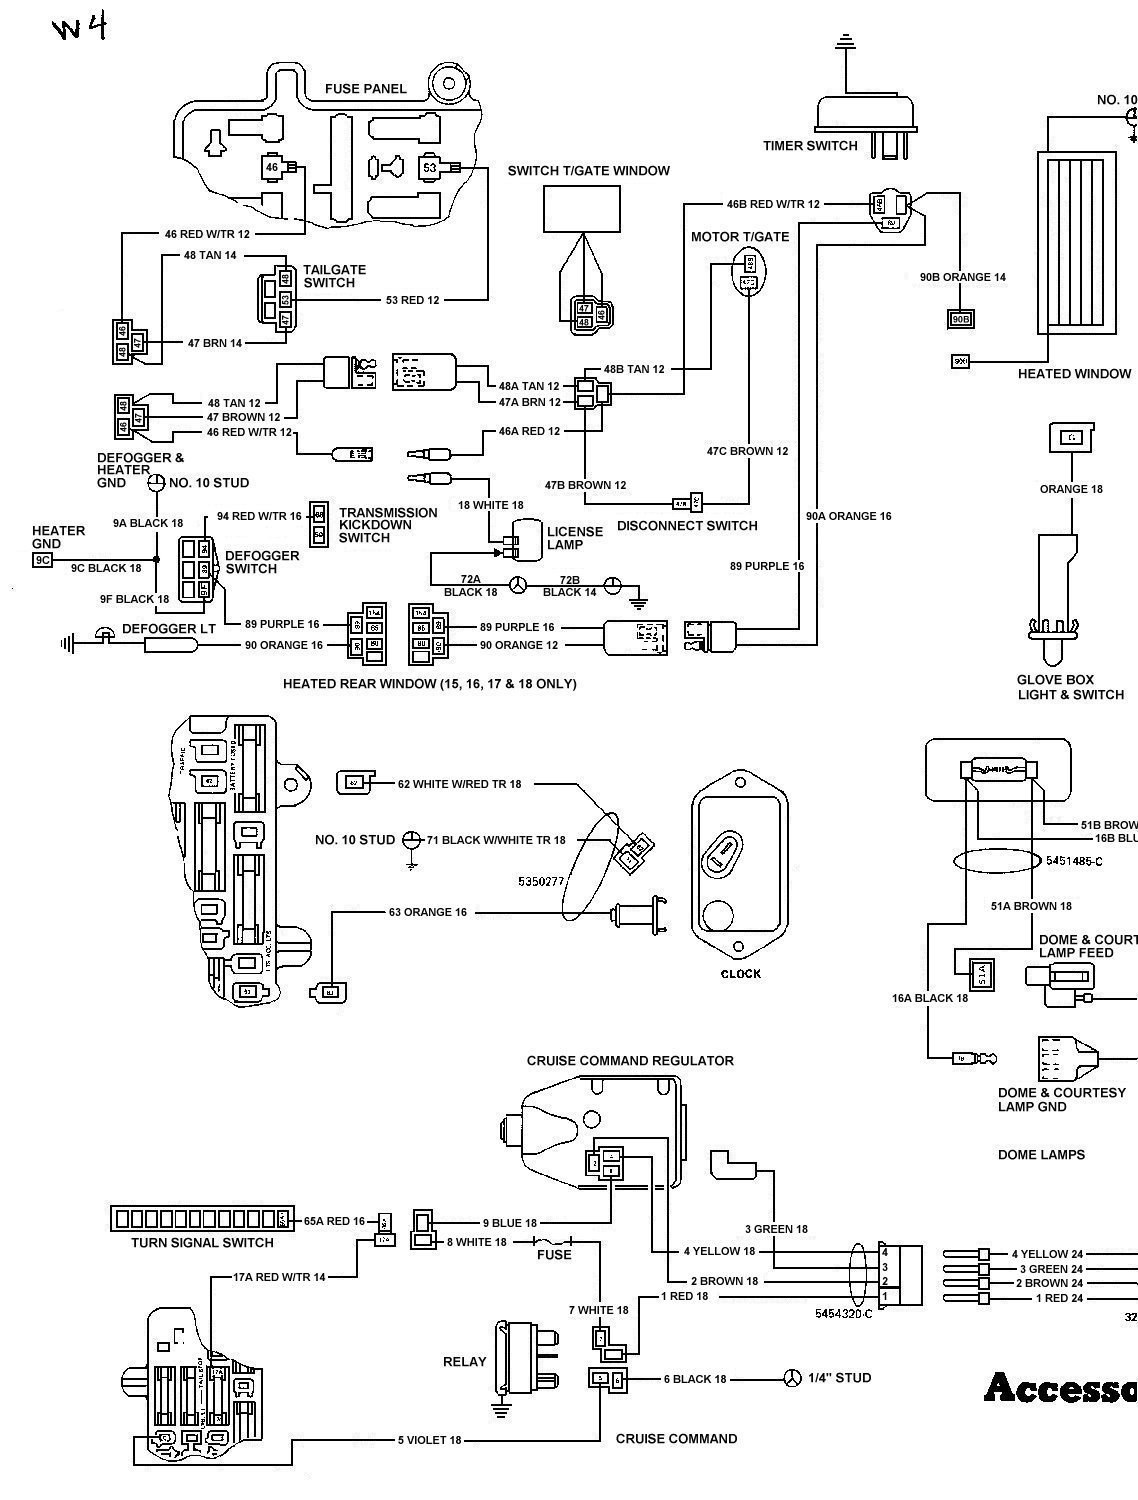 Turn Signal Switch Diagram